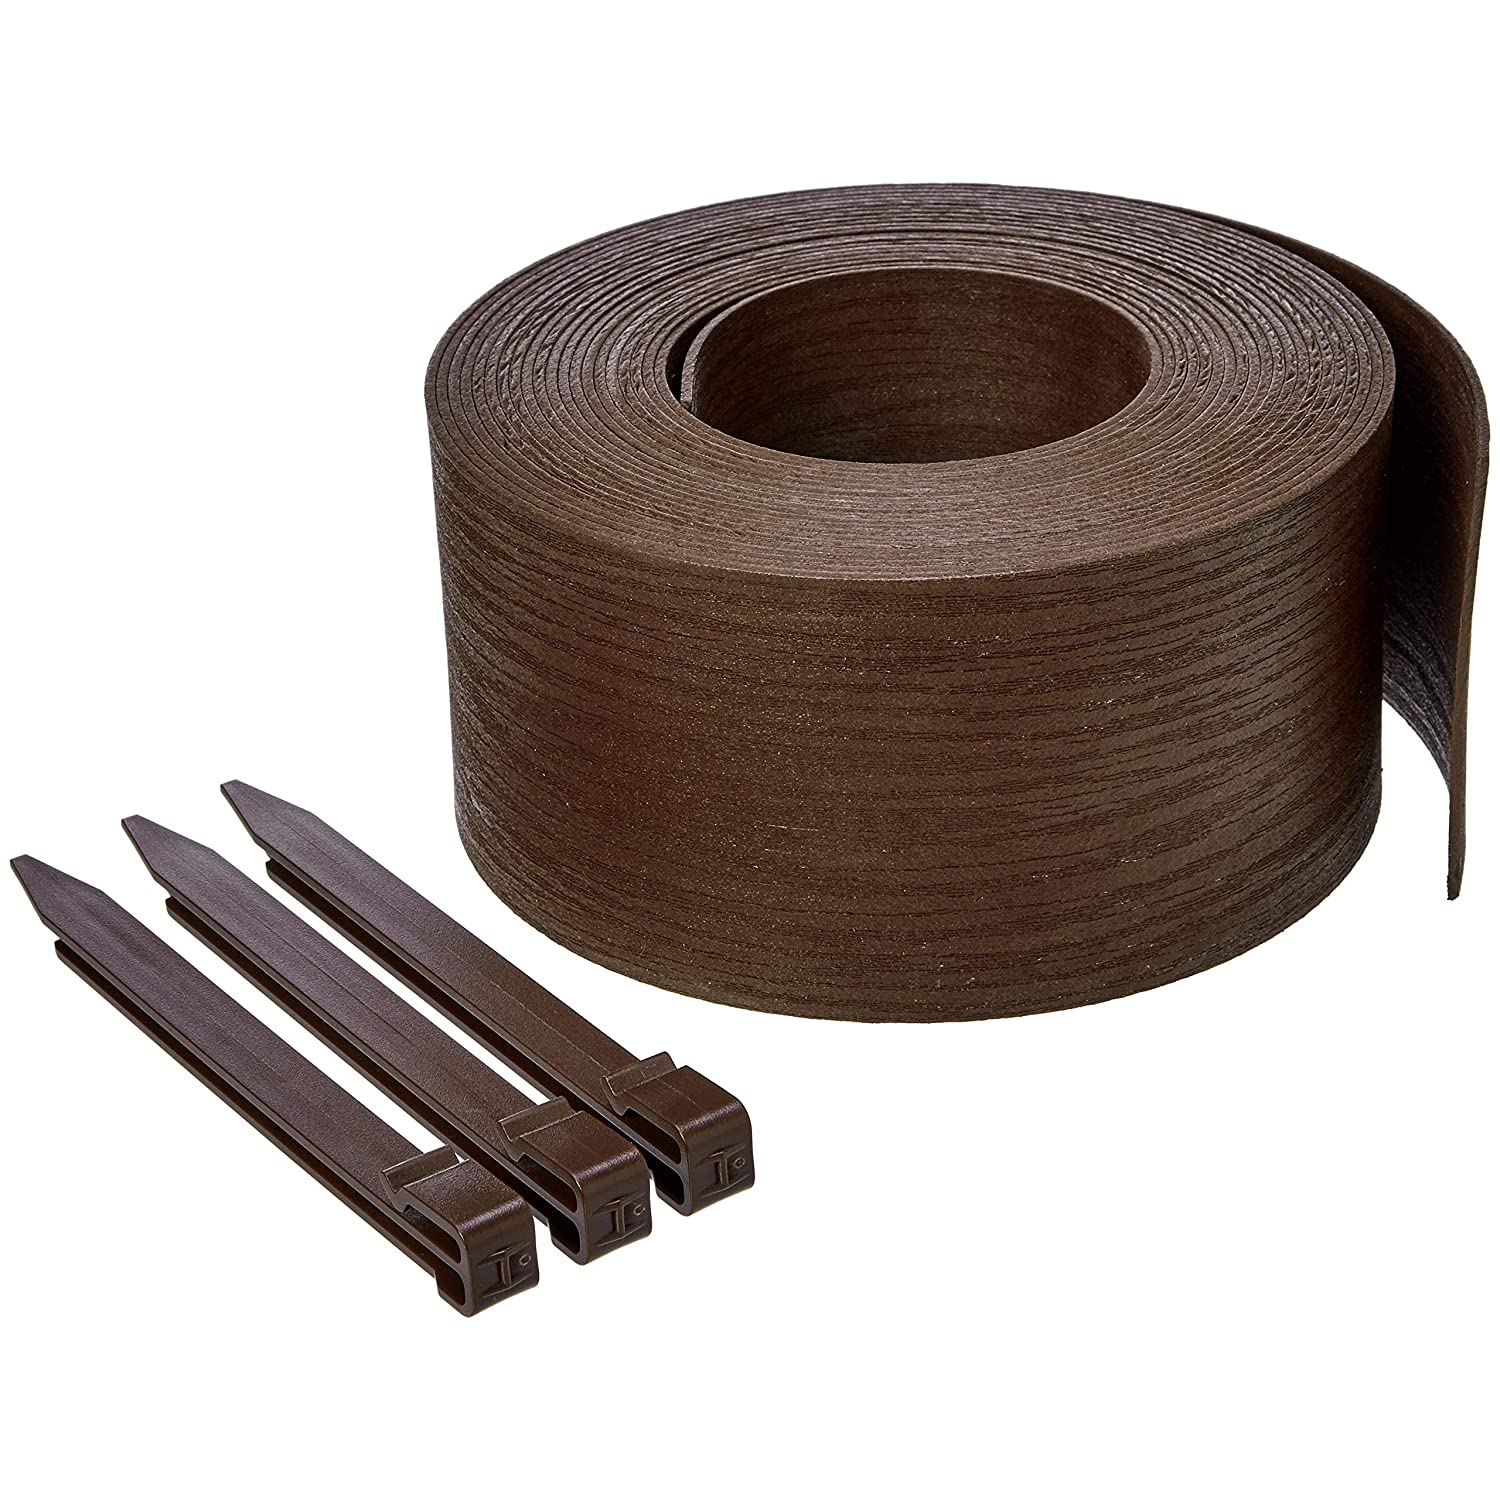 AmazonBasics Landscape Edging Coil with Stakes – 5 Inch, Brown